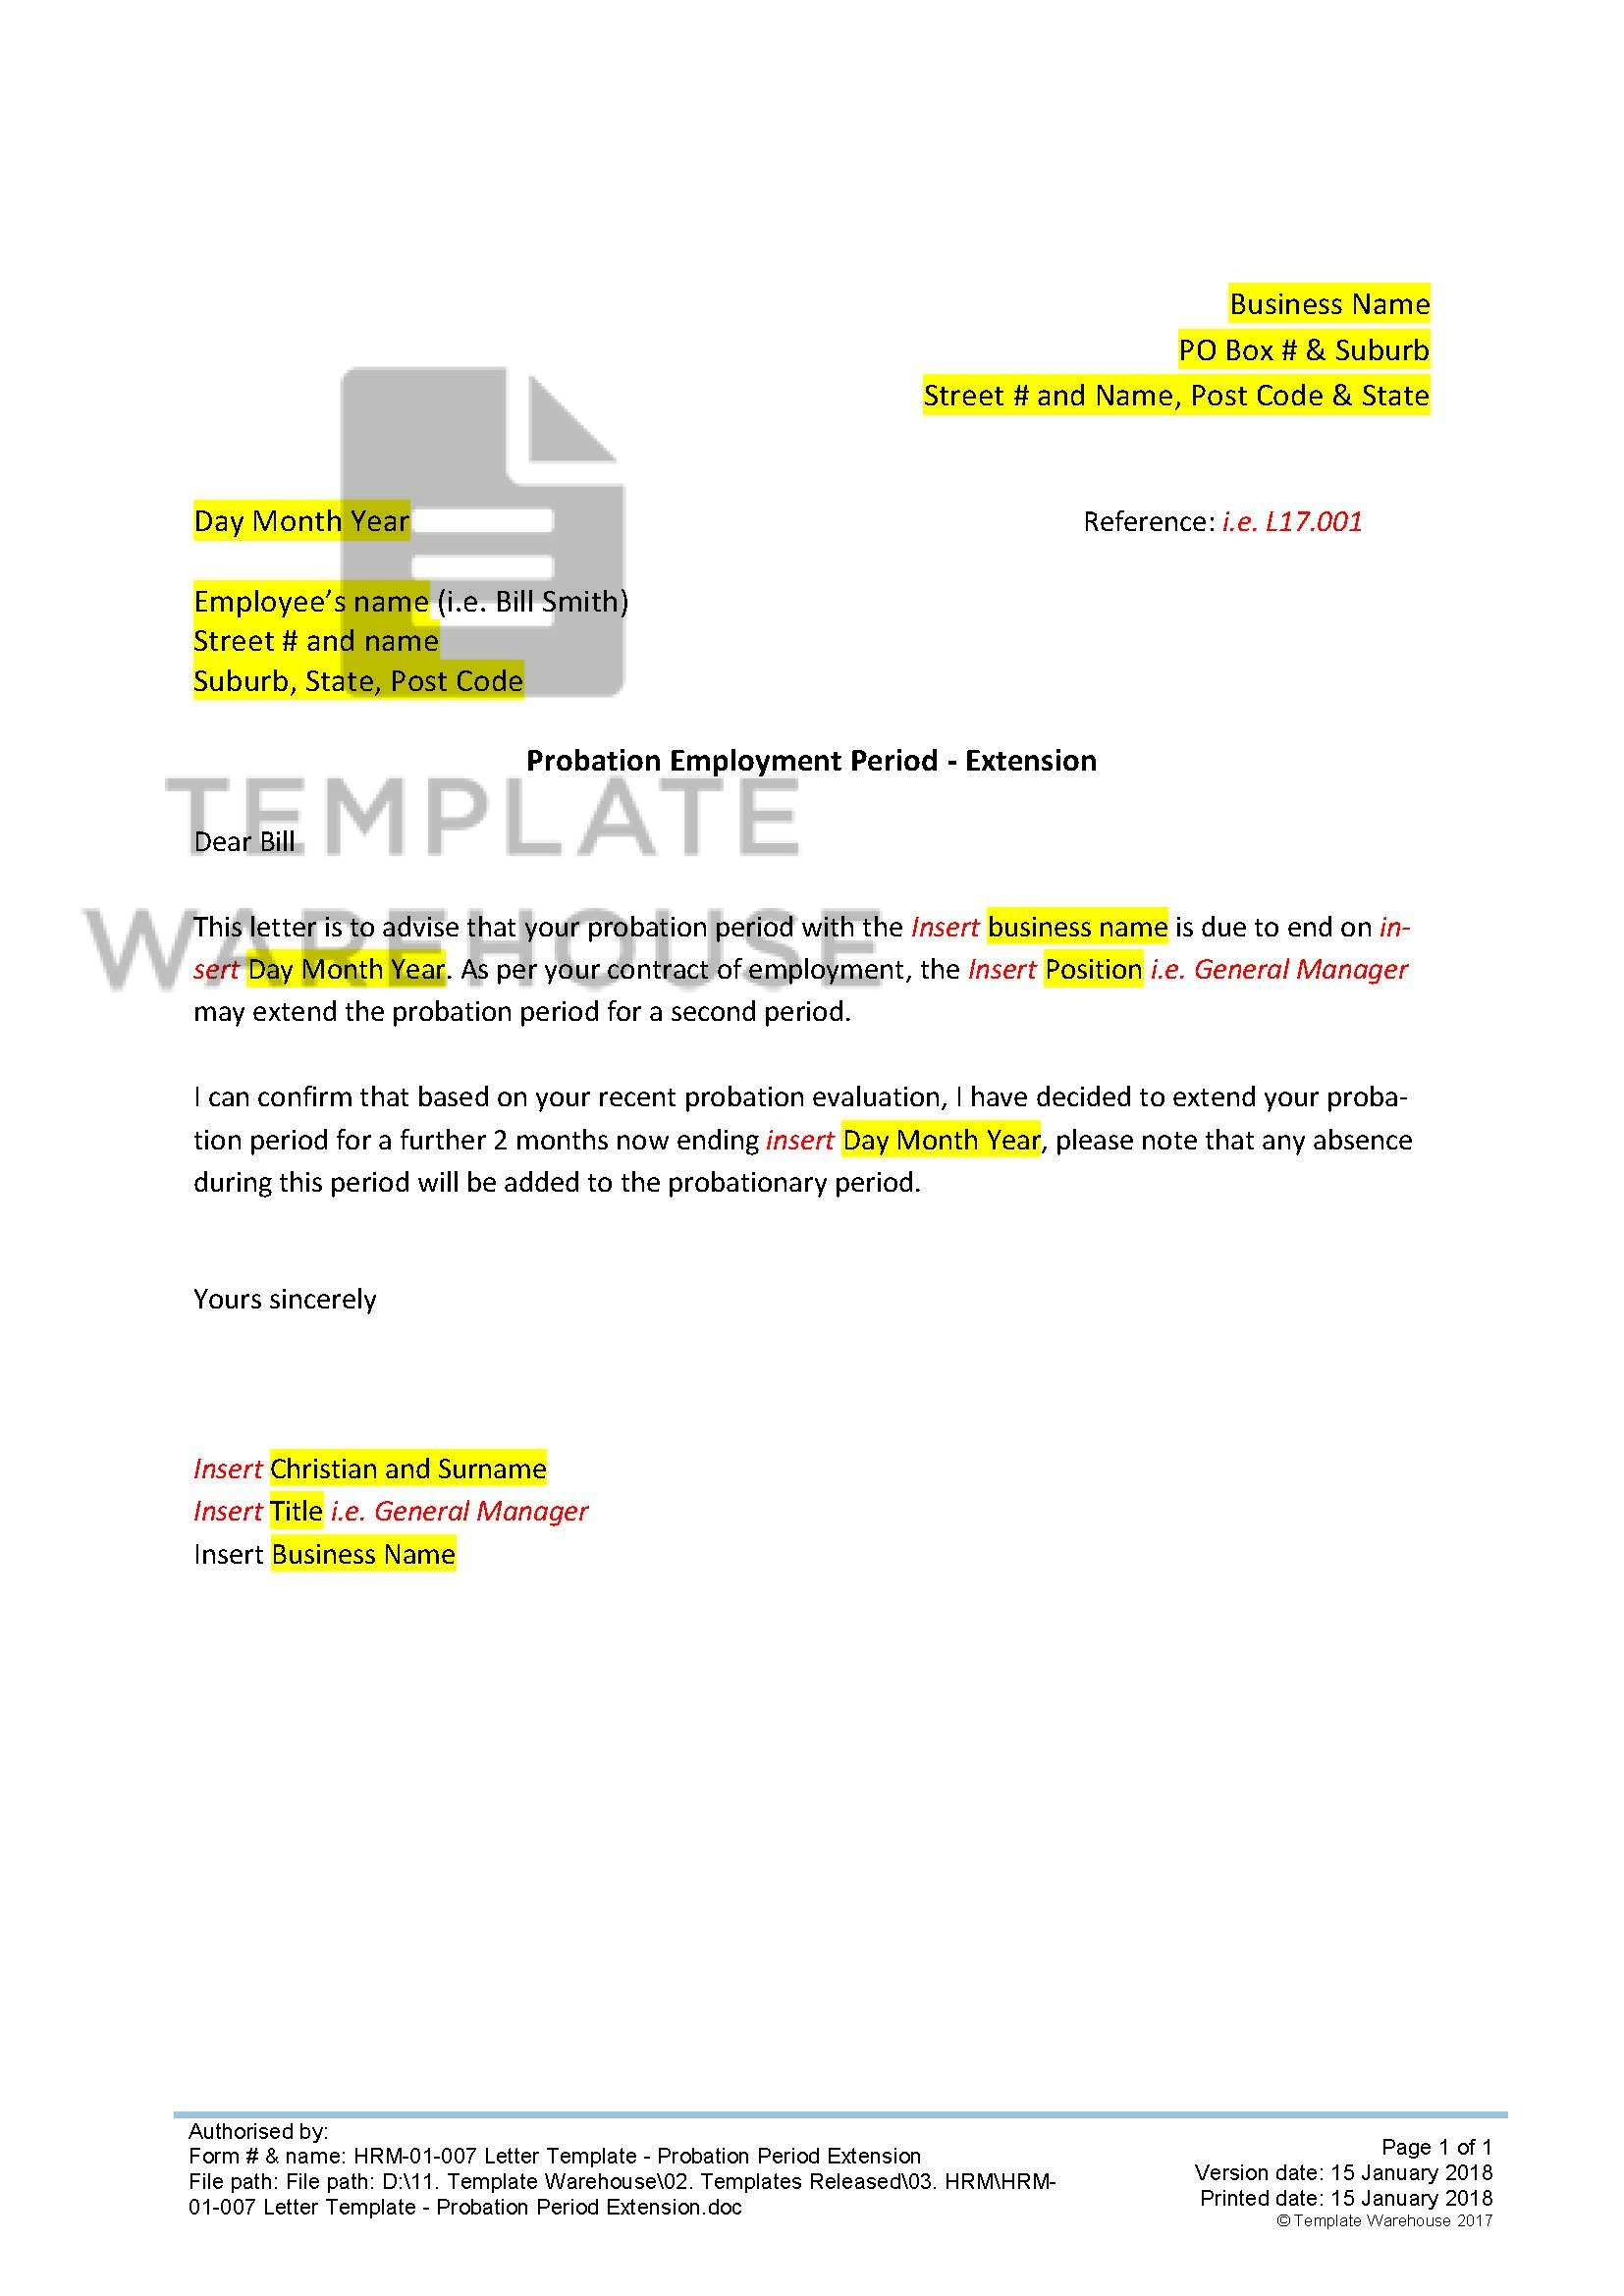 Extension Letter Sample from www.templatewarehouse.com.au